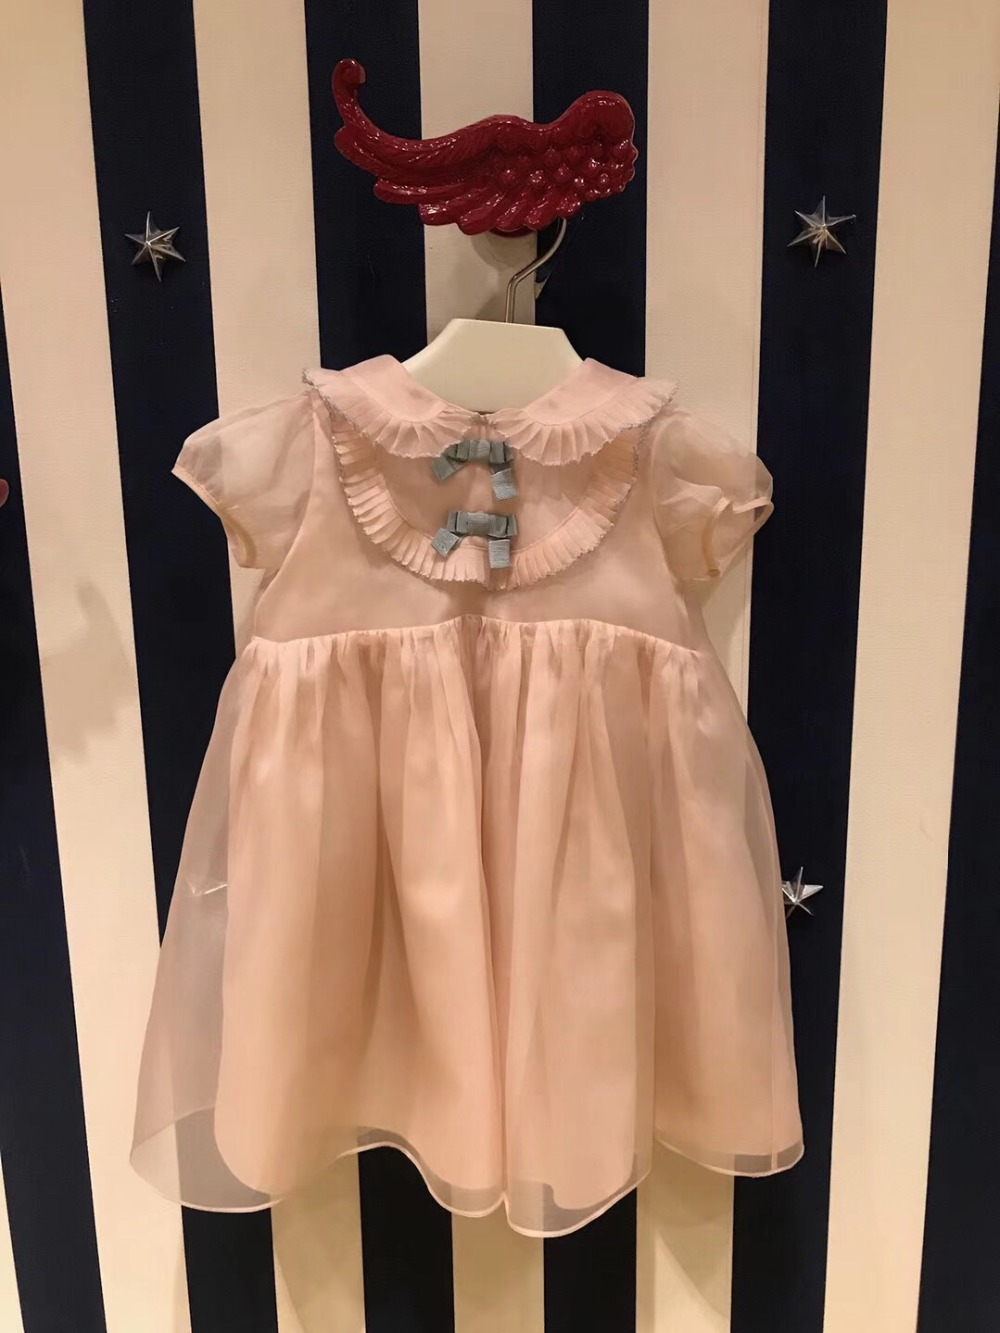 Fairy Dress for 3T Girls Summer Dress baby High Quality Kids Fashion Clothing Bow decoration short sleeve girls dresses